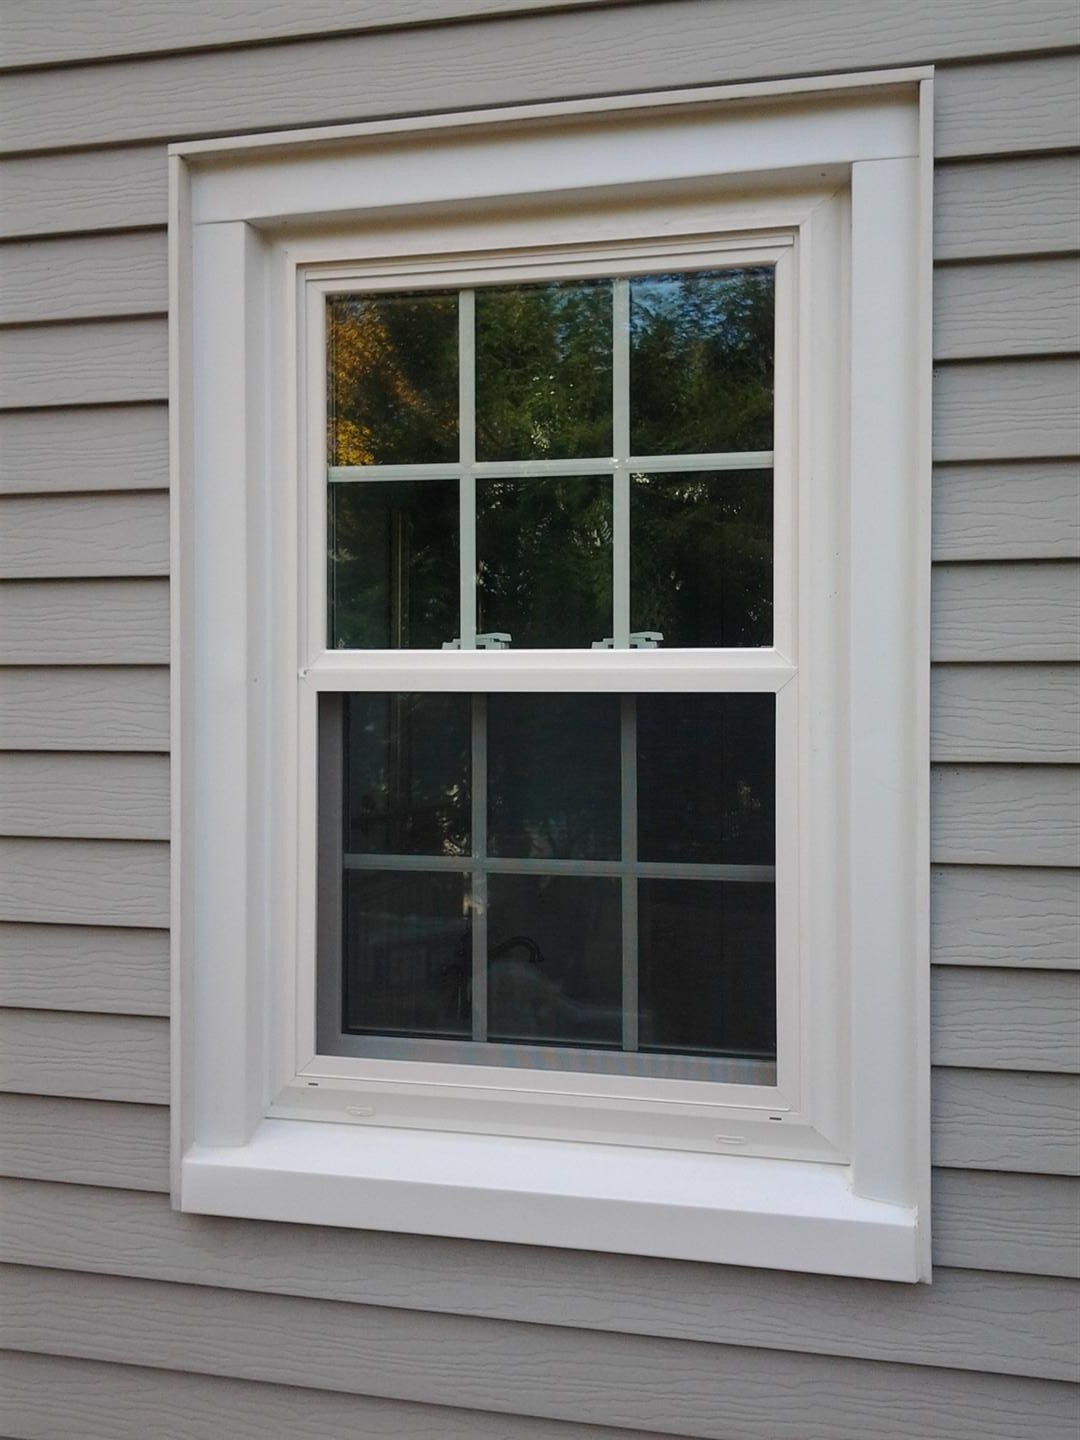 Call m m construction specialist at 908 378 5951 to for Picture window replacement